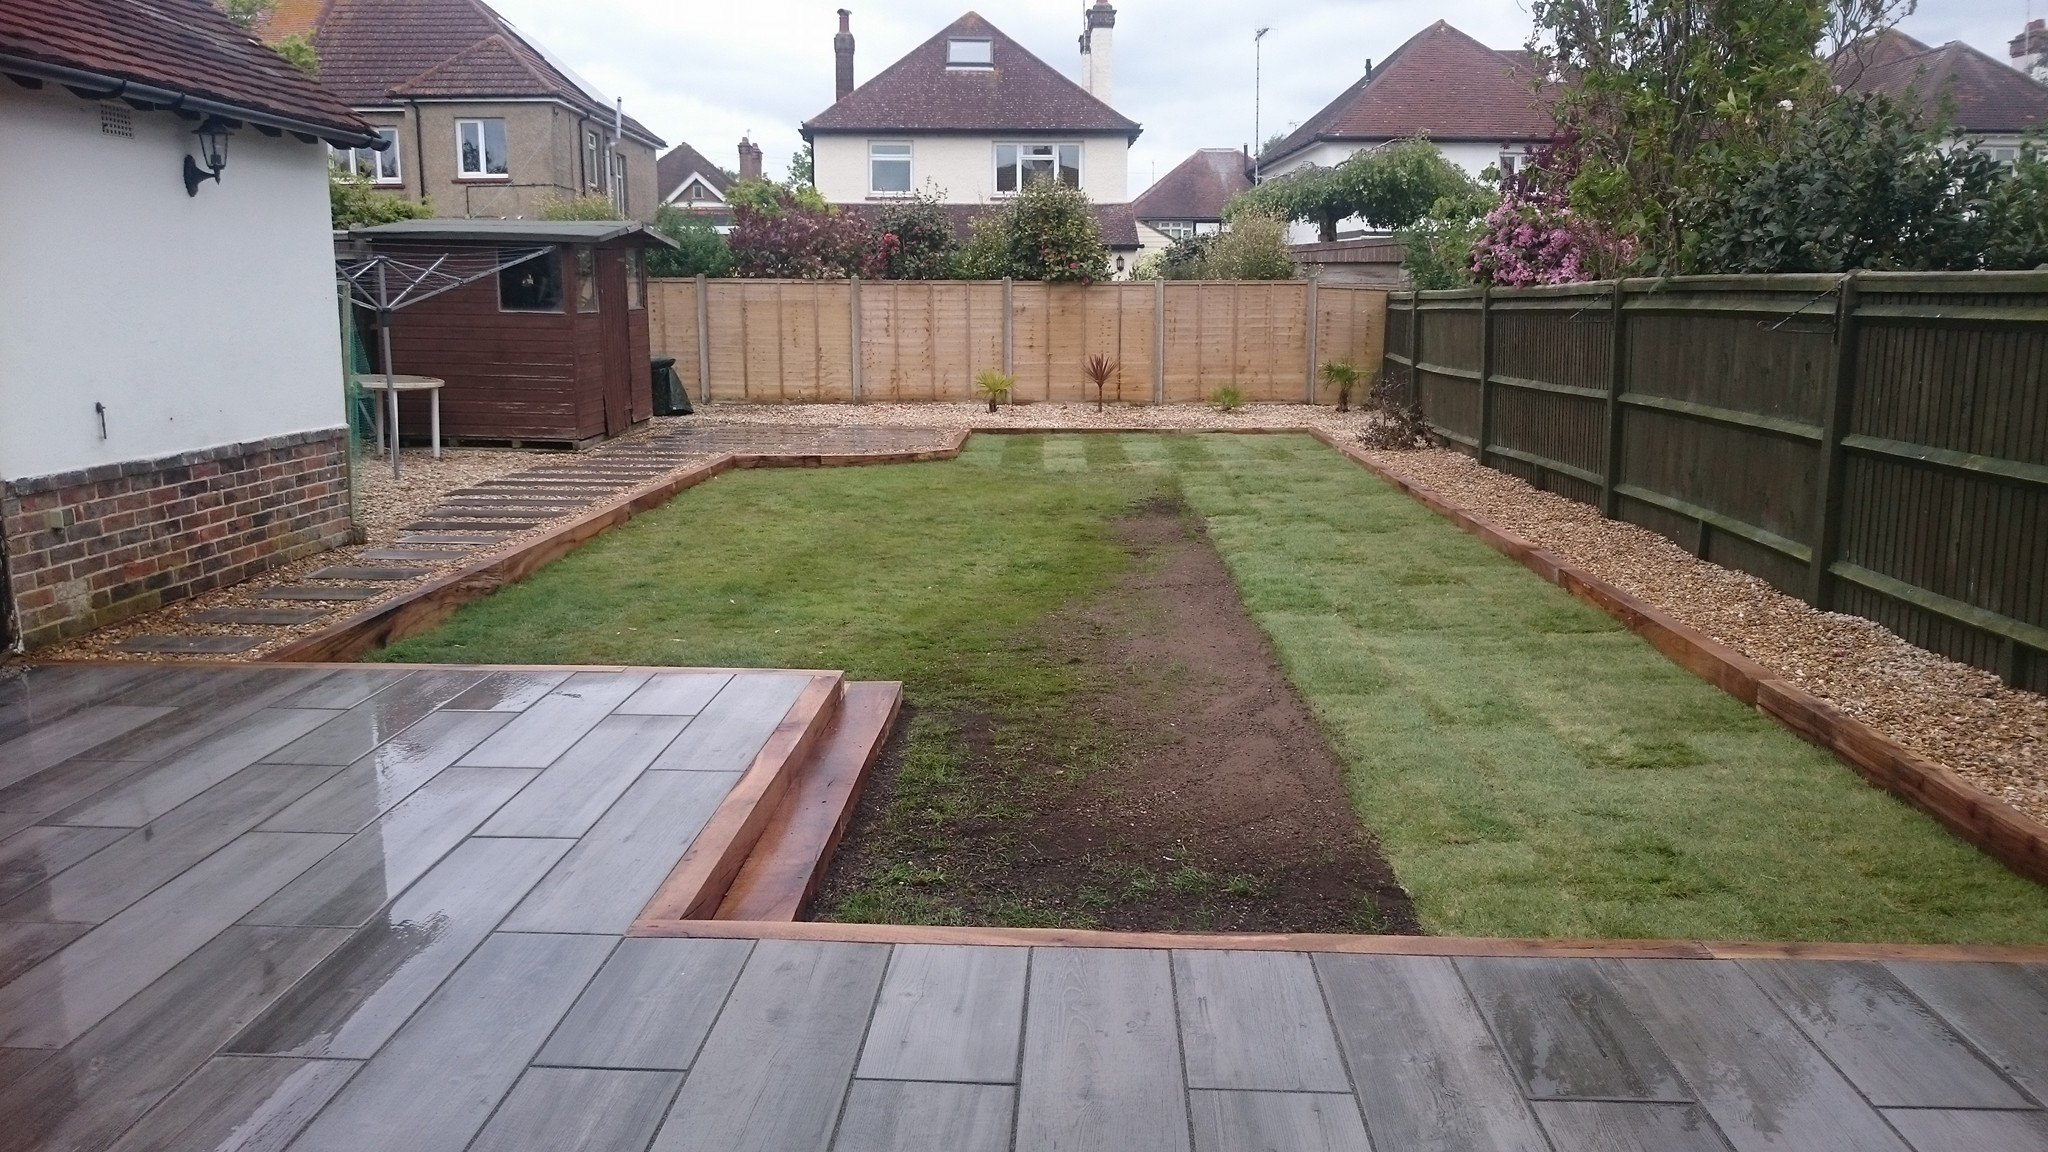 Wood effect patio with wooden border and porcelain 'stepping stones'.